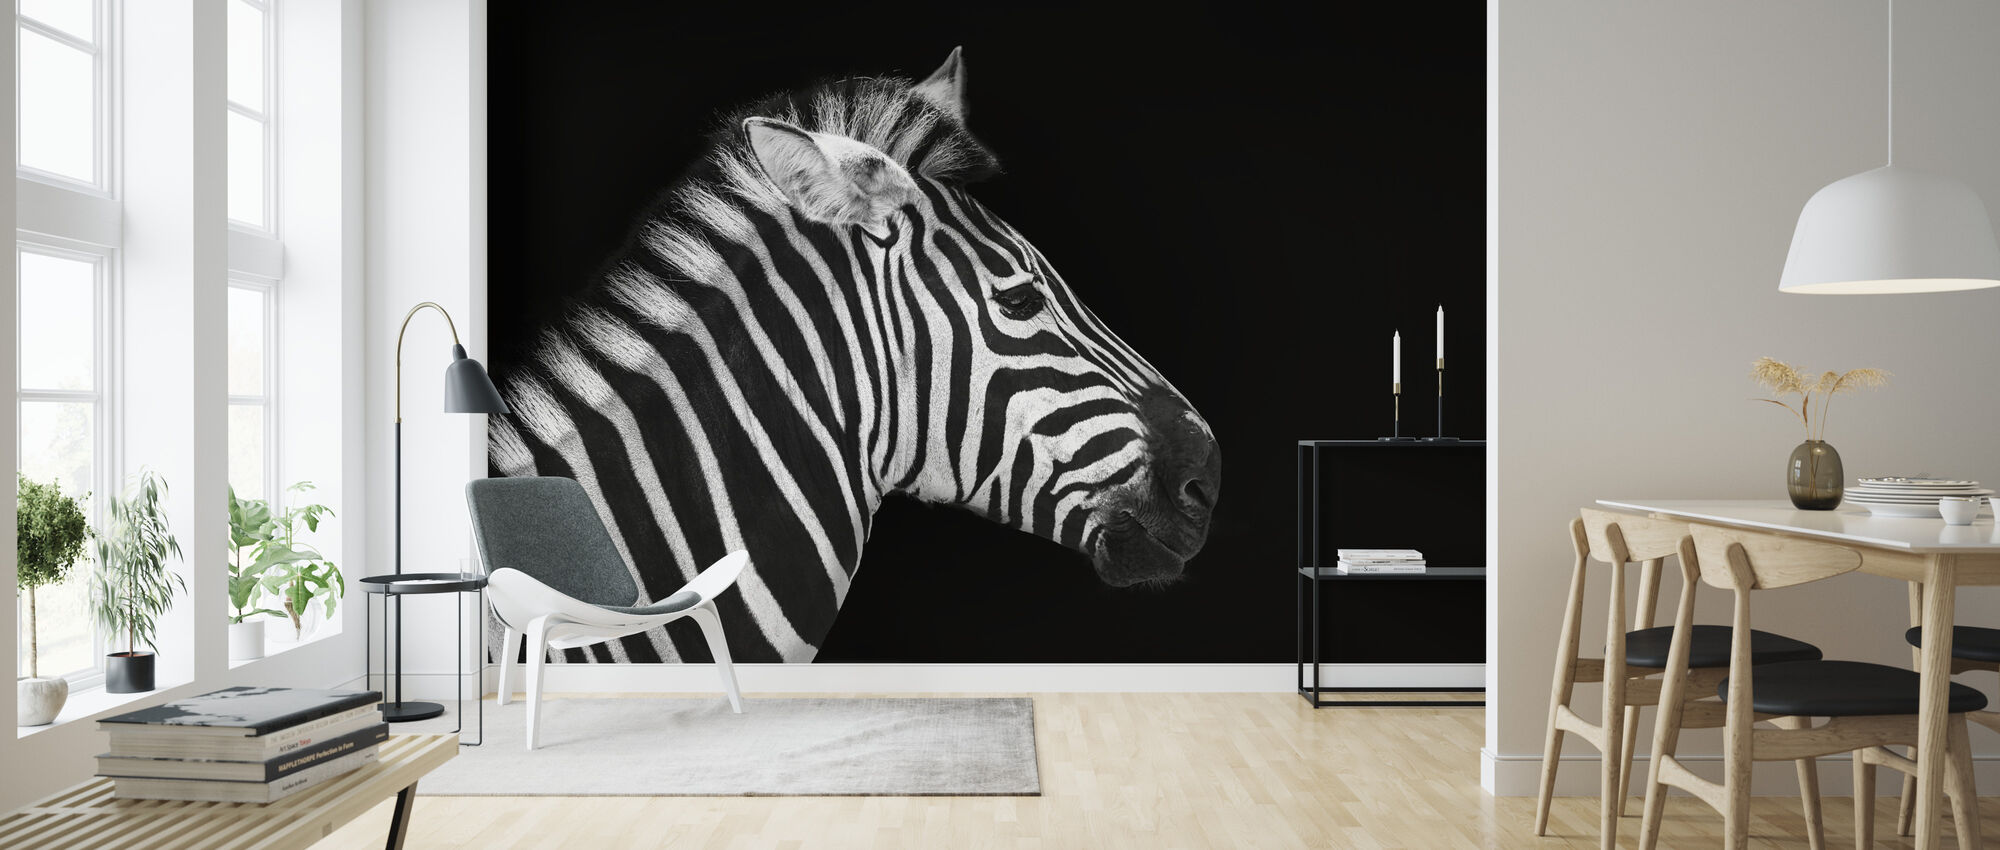 Zebra Portrait - Wallpaper - Living Room